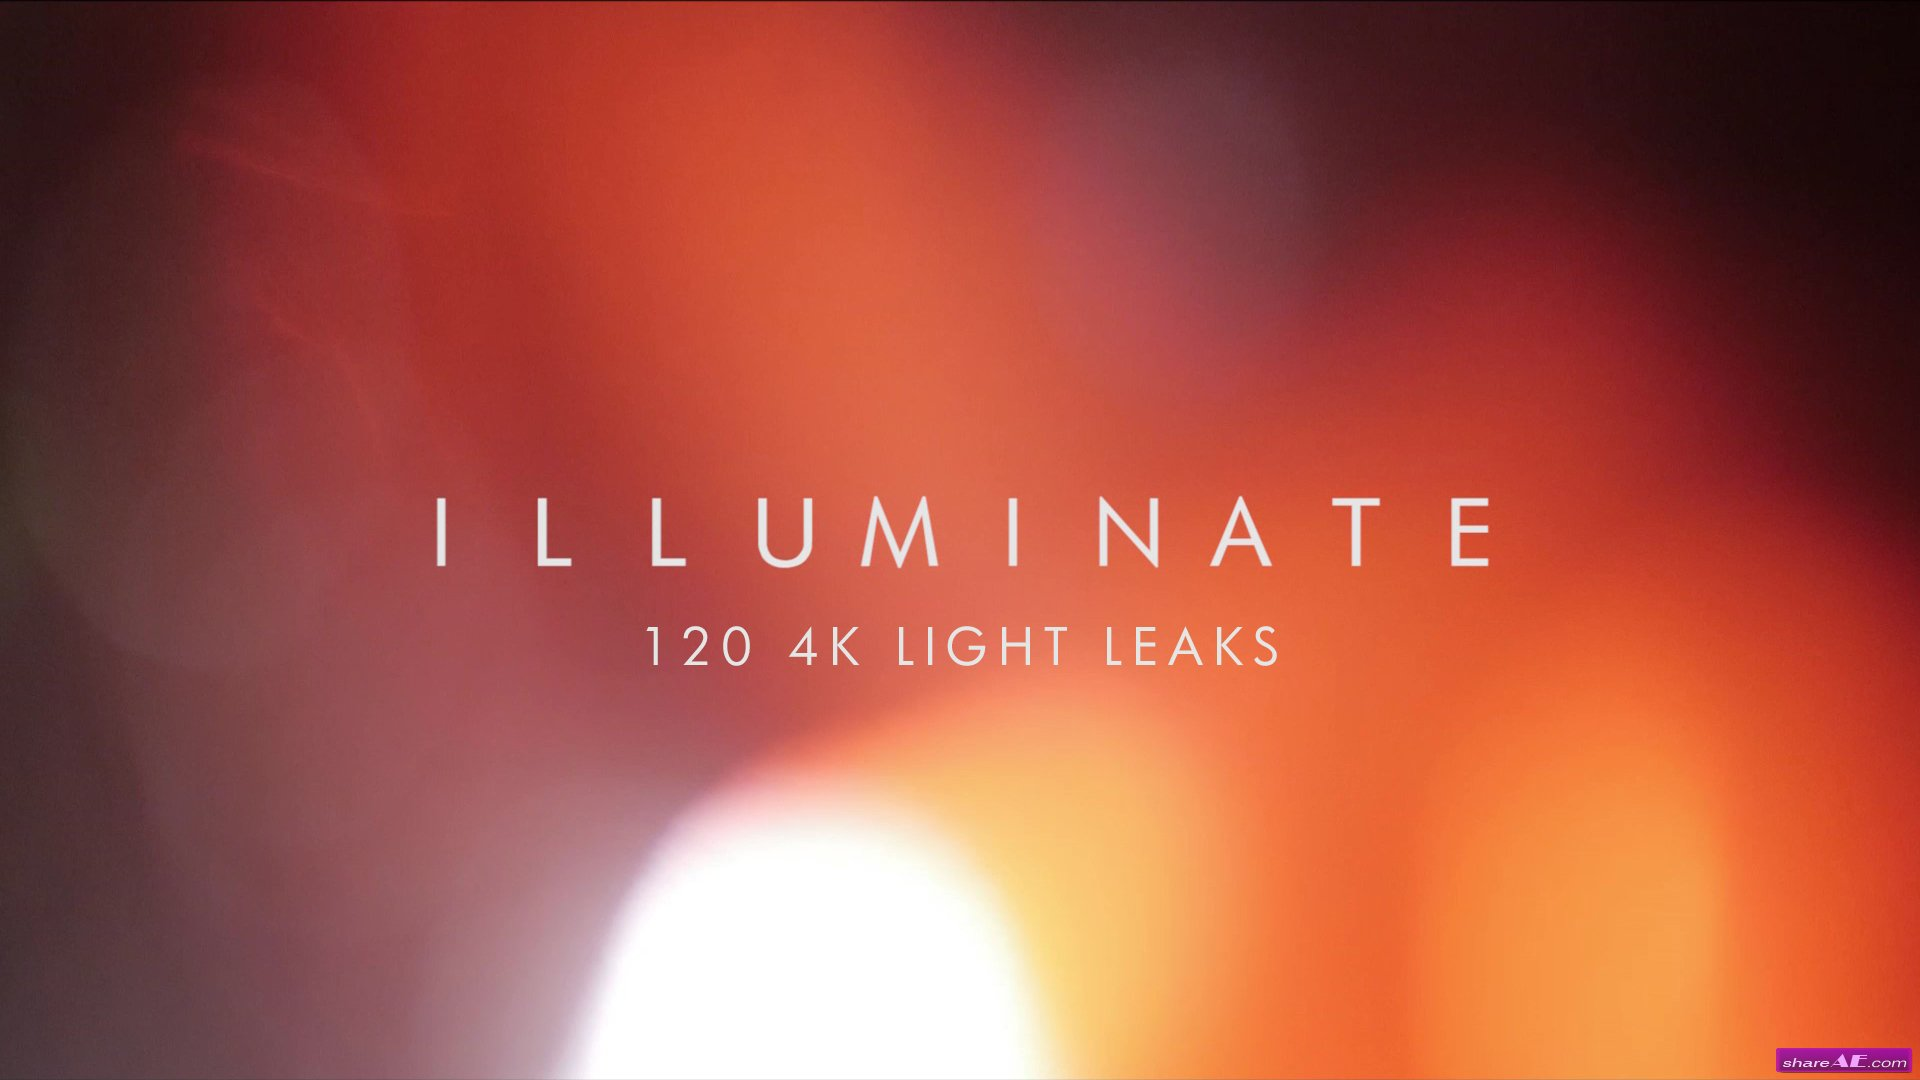 Illuminate 4k Light Leak - 120 Elements - Rocketstock ...